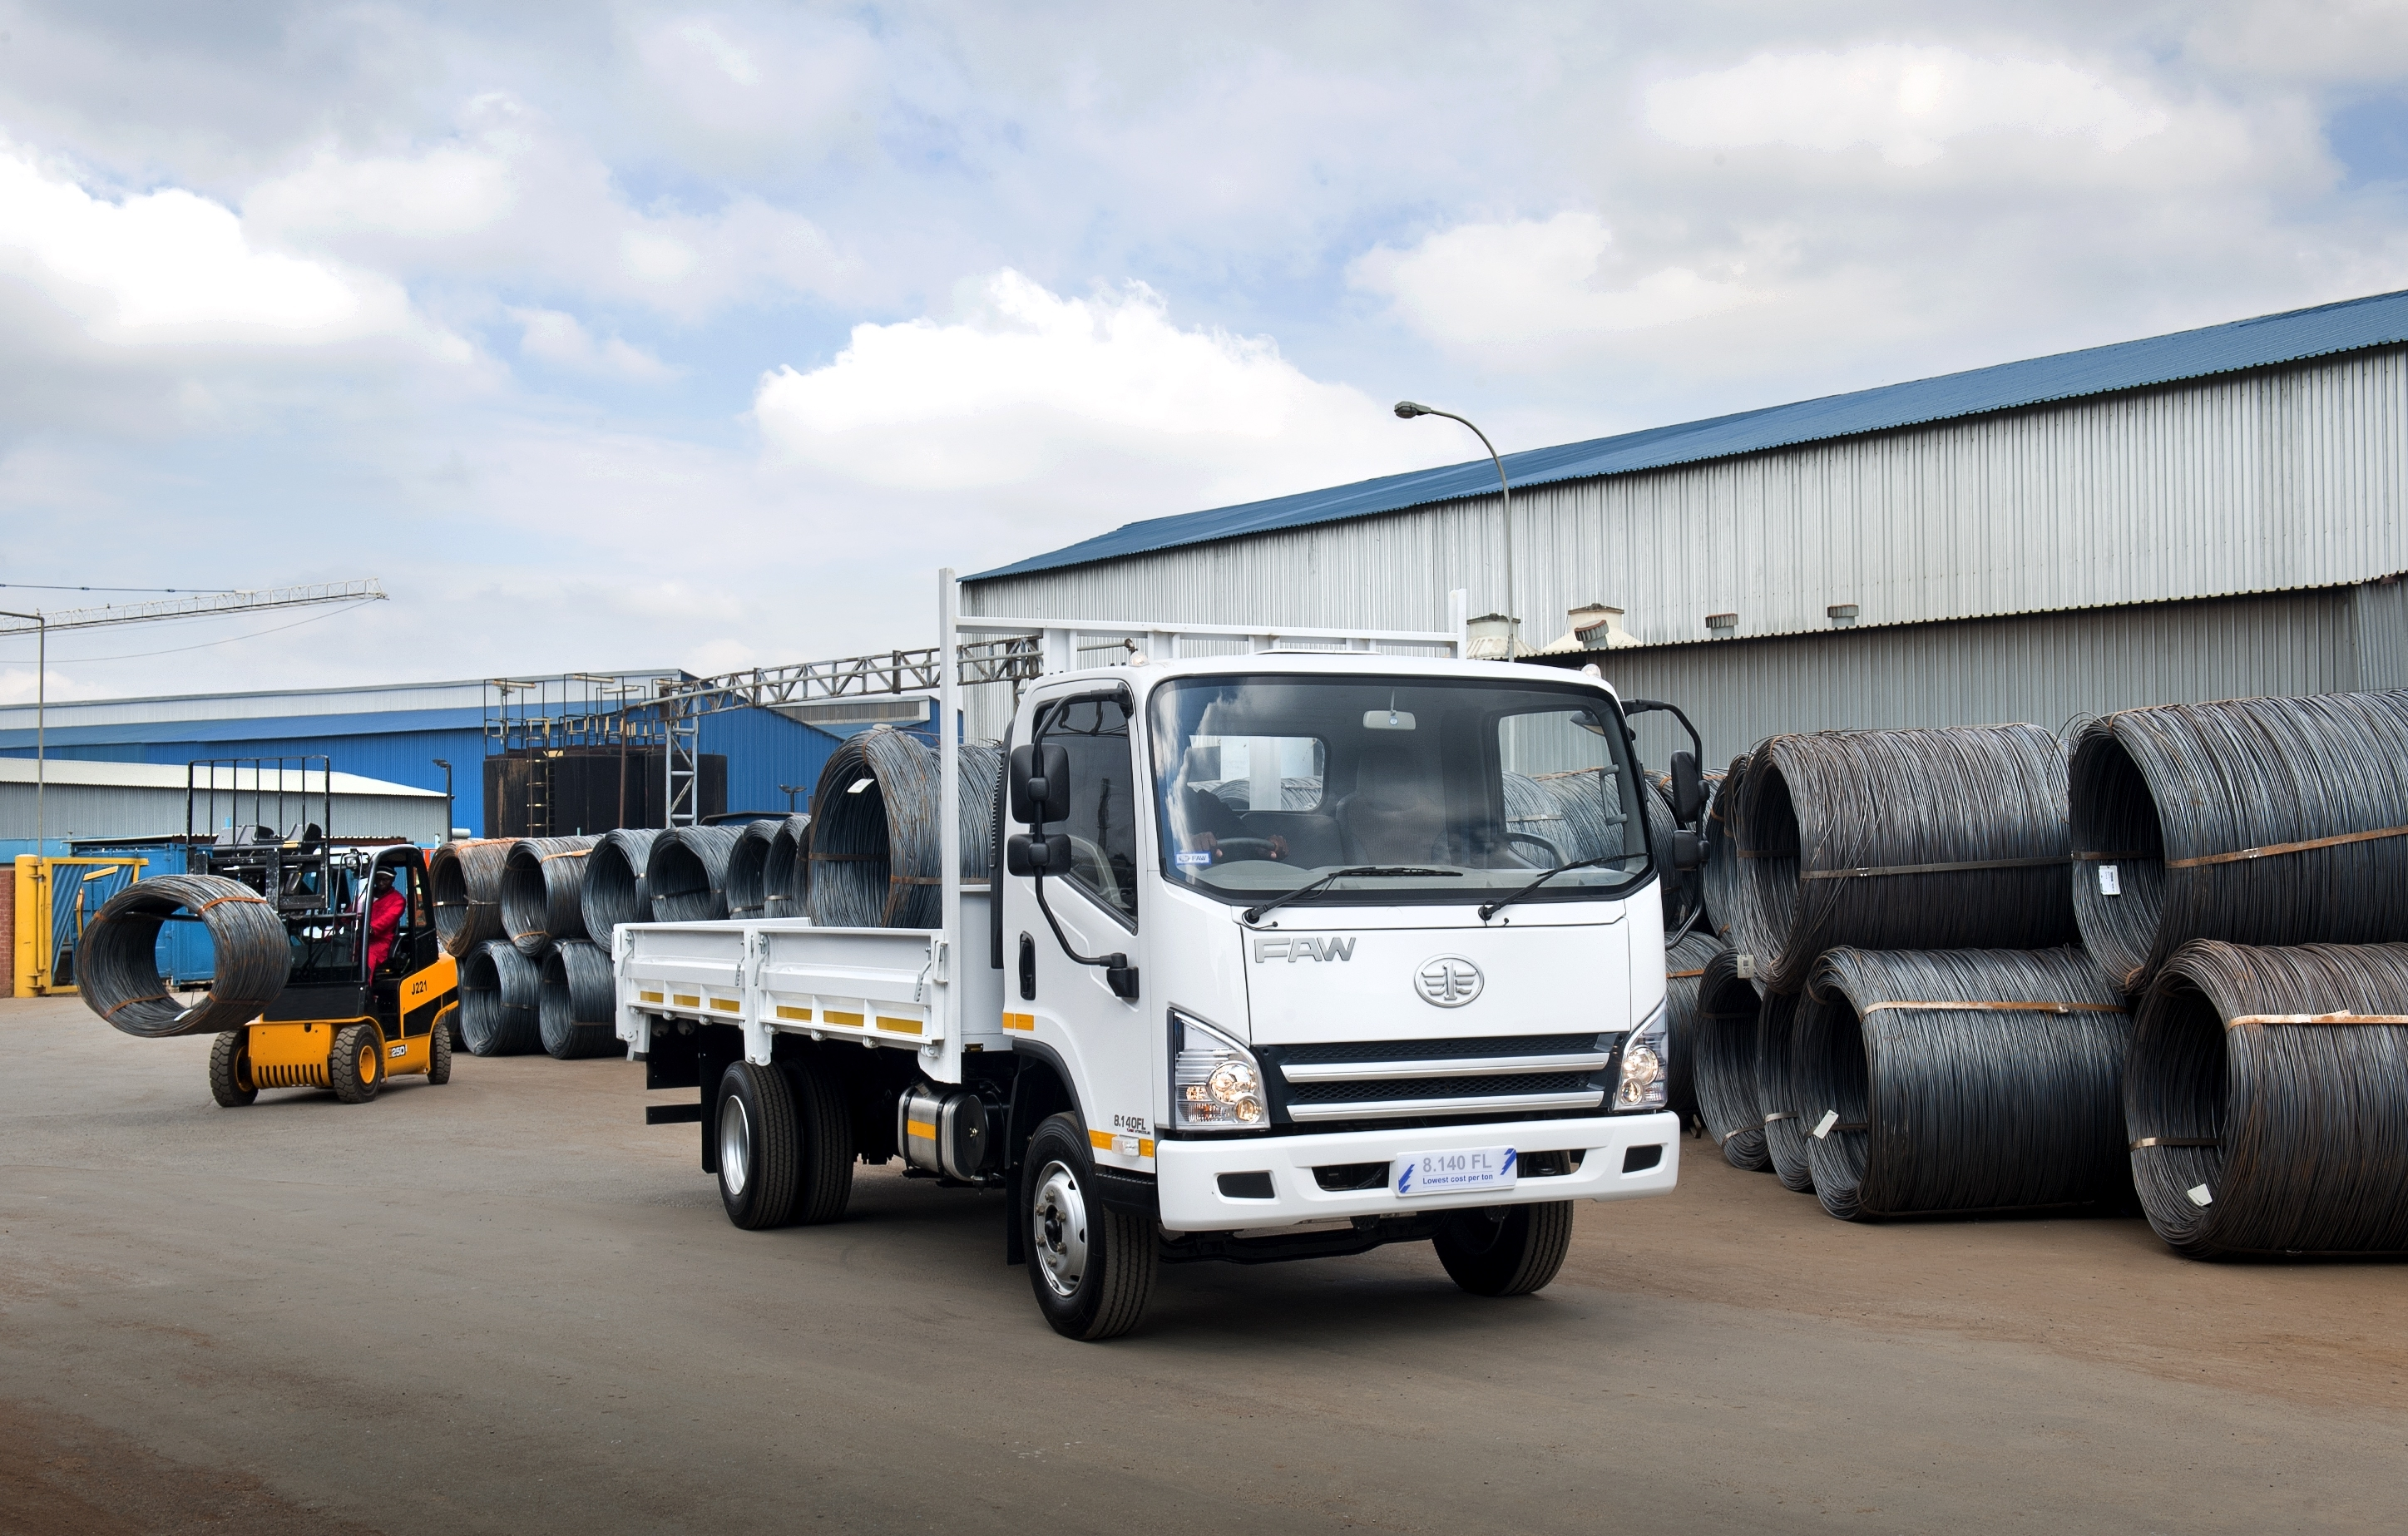 Faw Vehicle Manufacturers South Africa Trucks And Heavy Equipment Digital